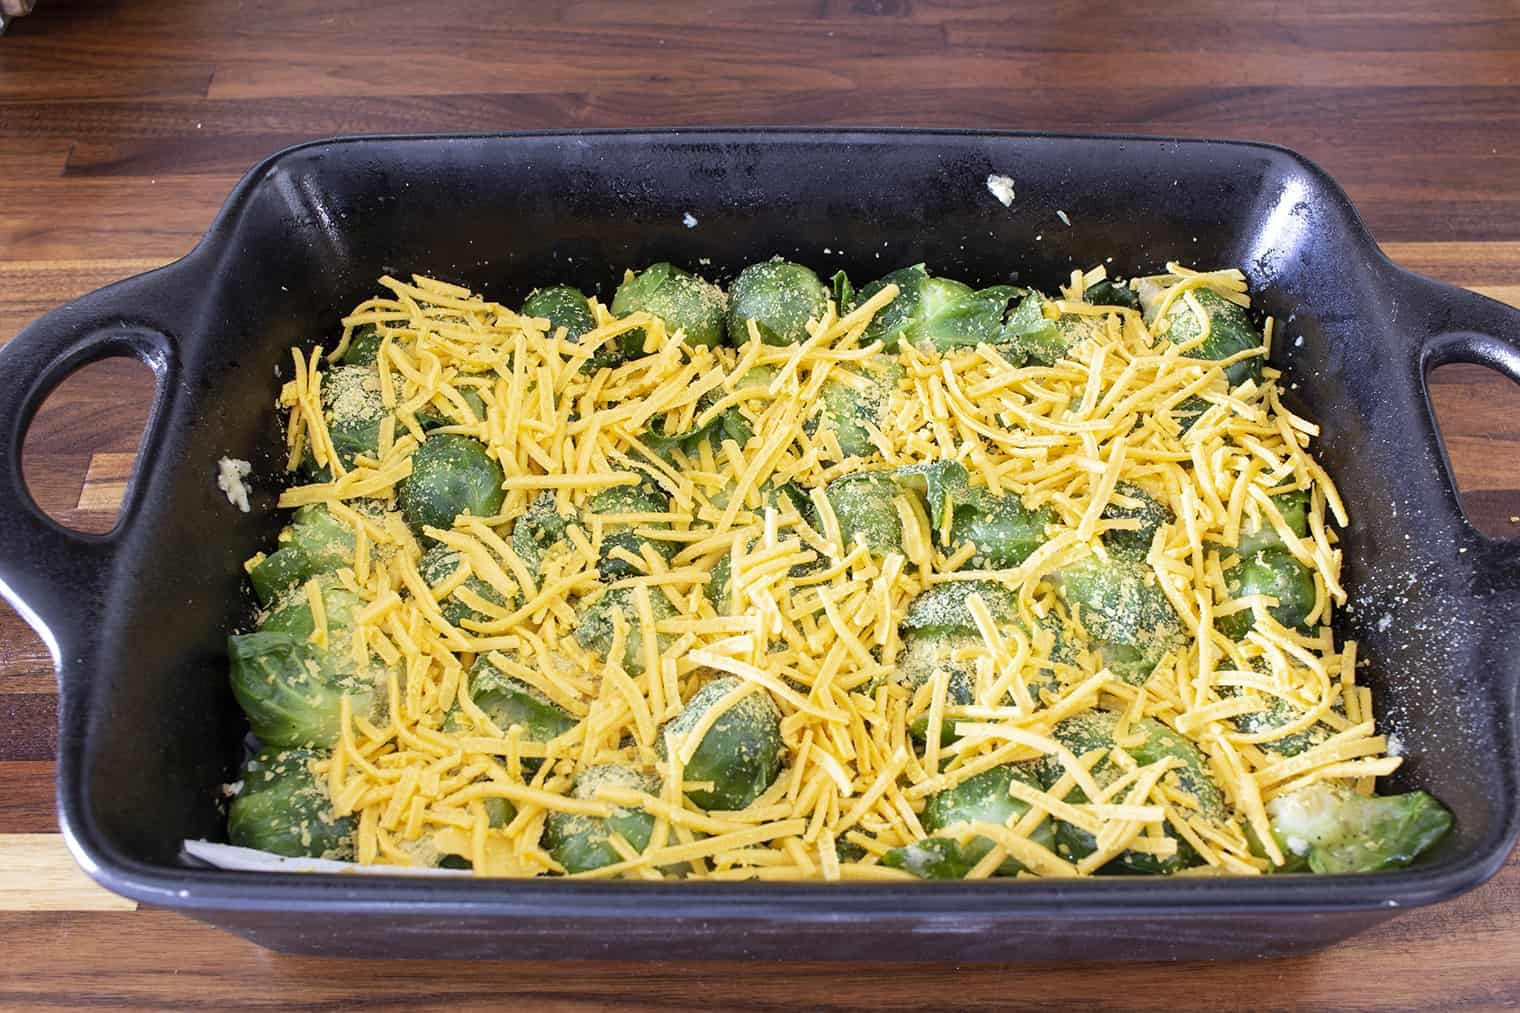 smashed brussel sprouts before oven